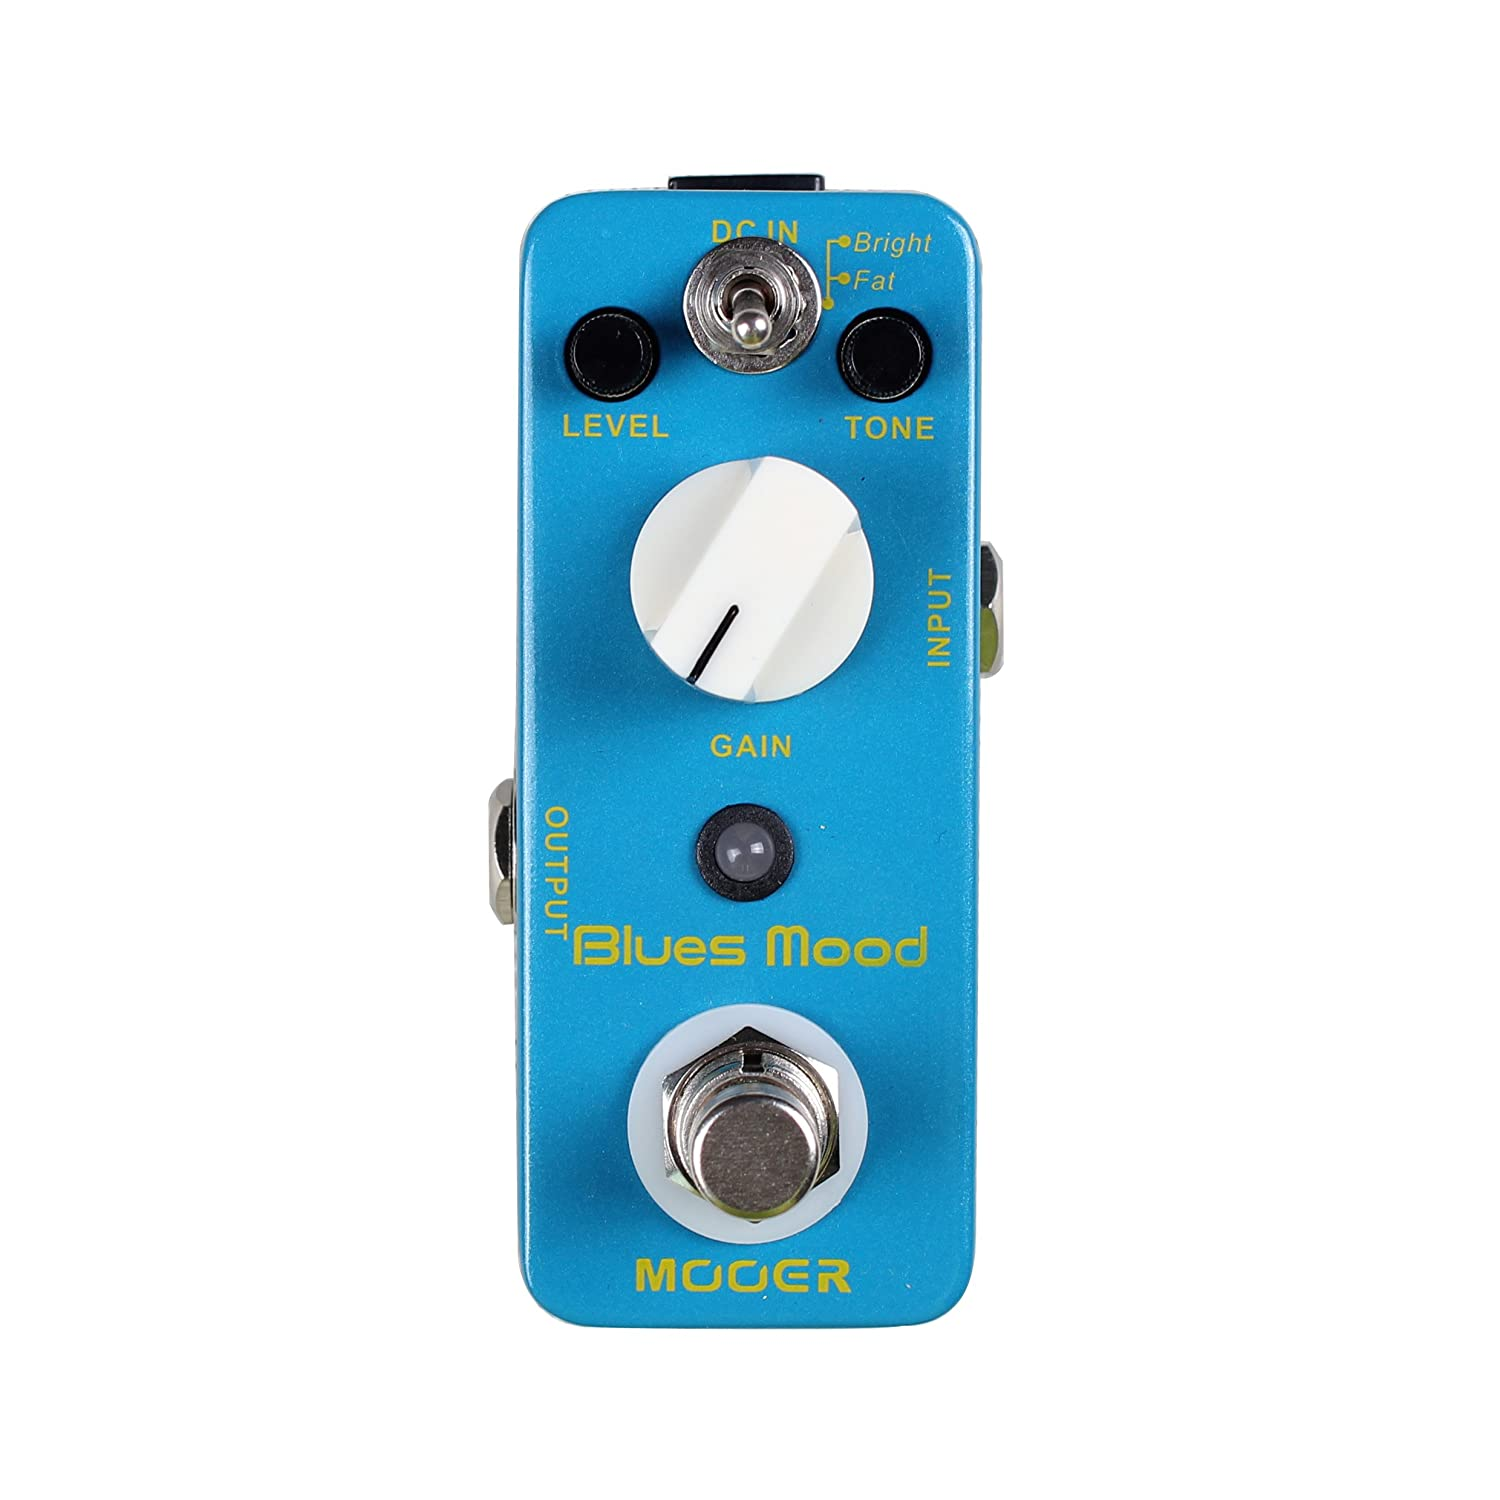 Mooer MBD2 Micro Pedal Series Blues Mood Guitar Distortion Effect Pedal